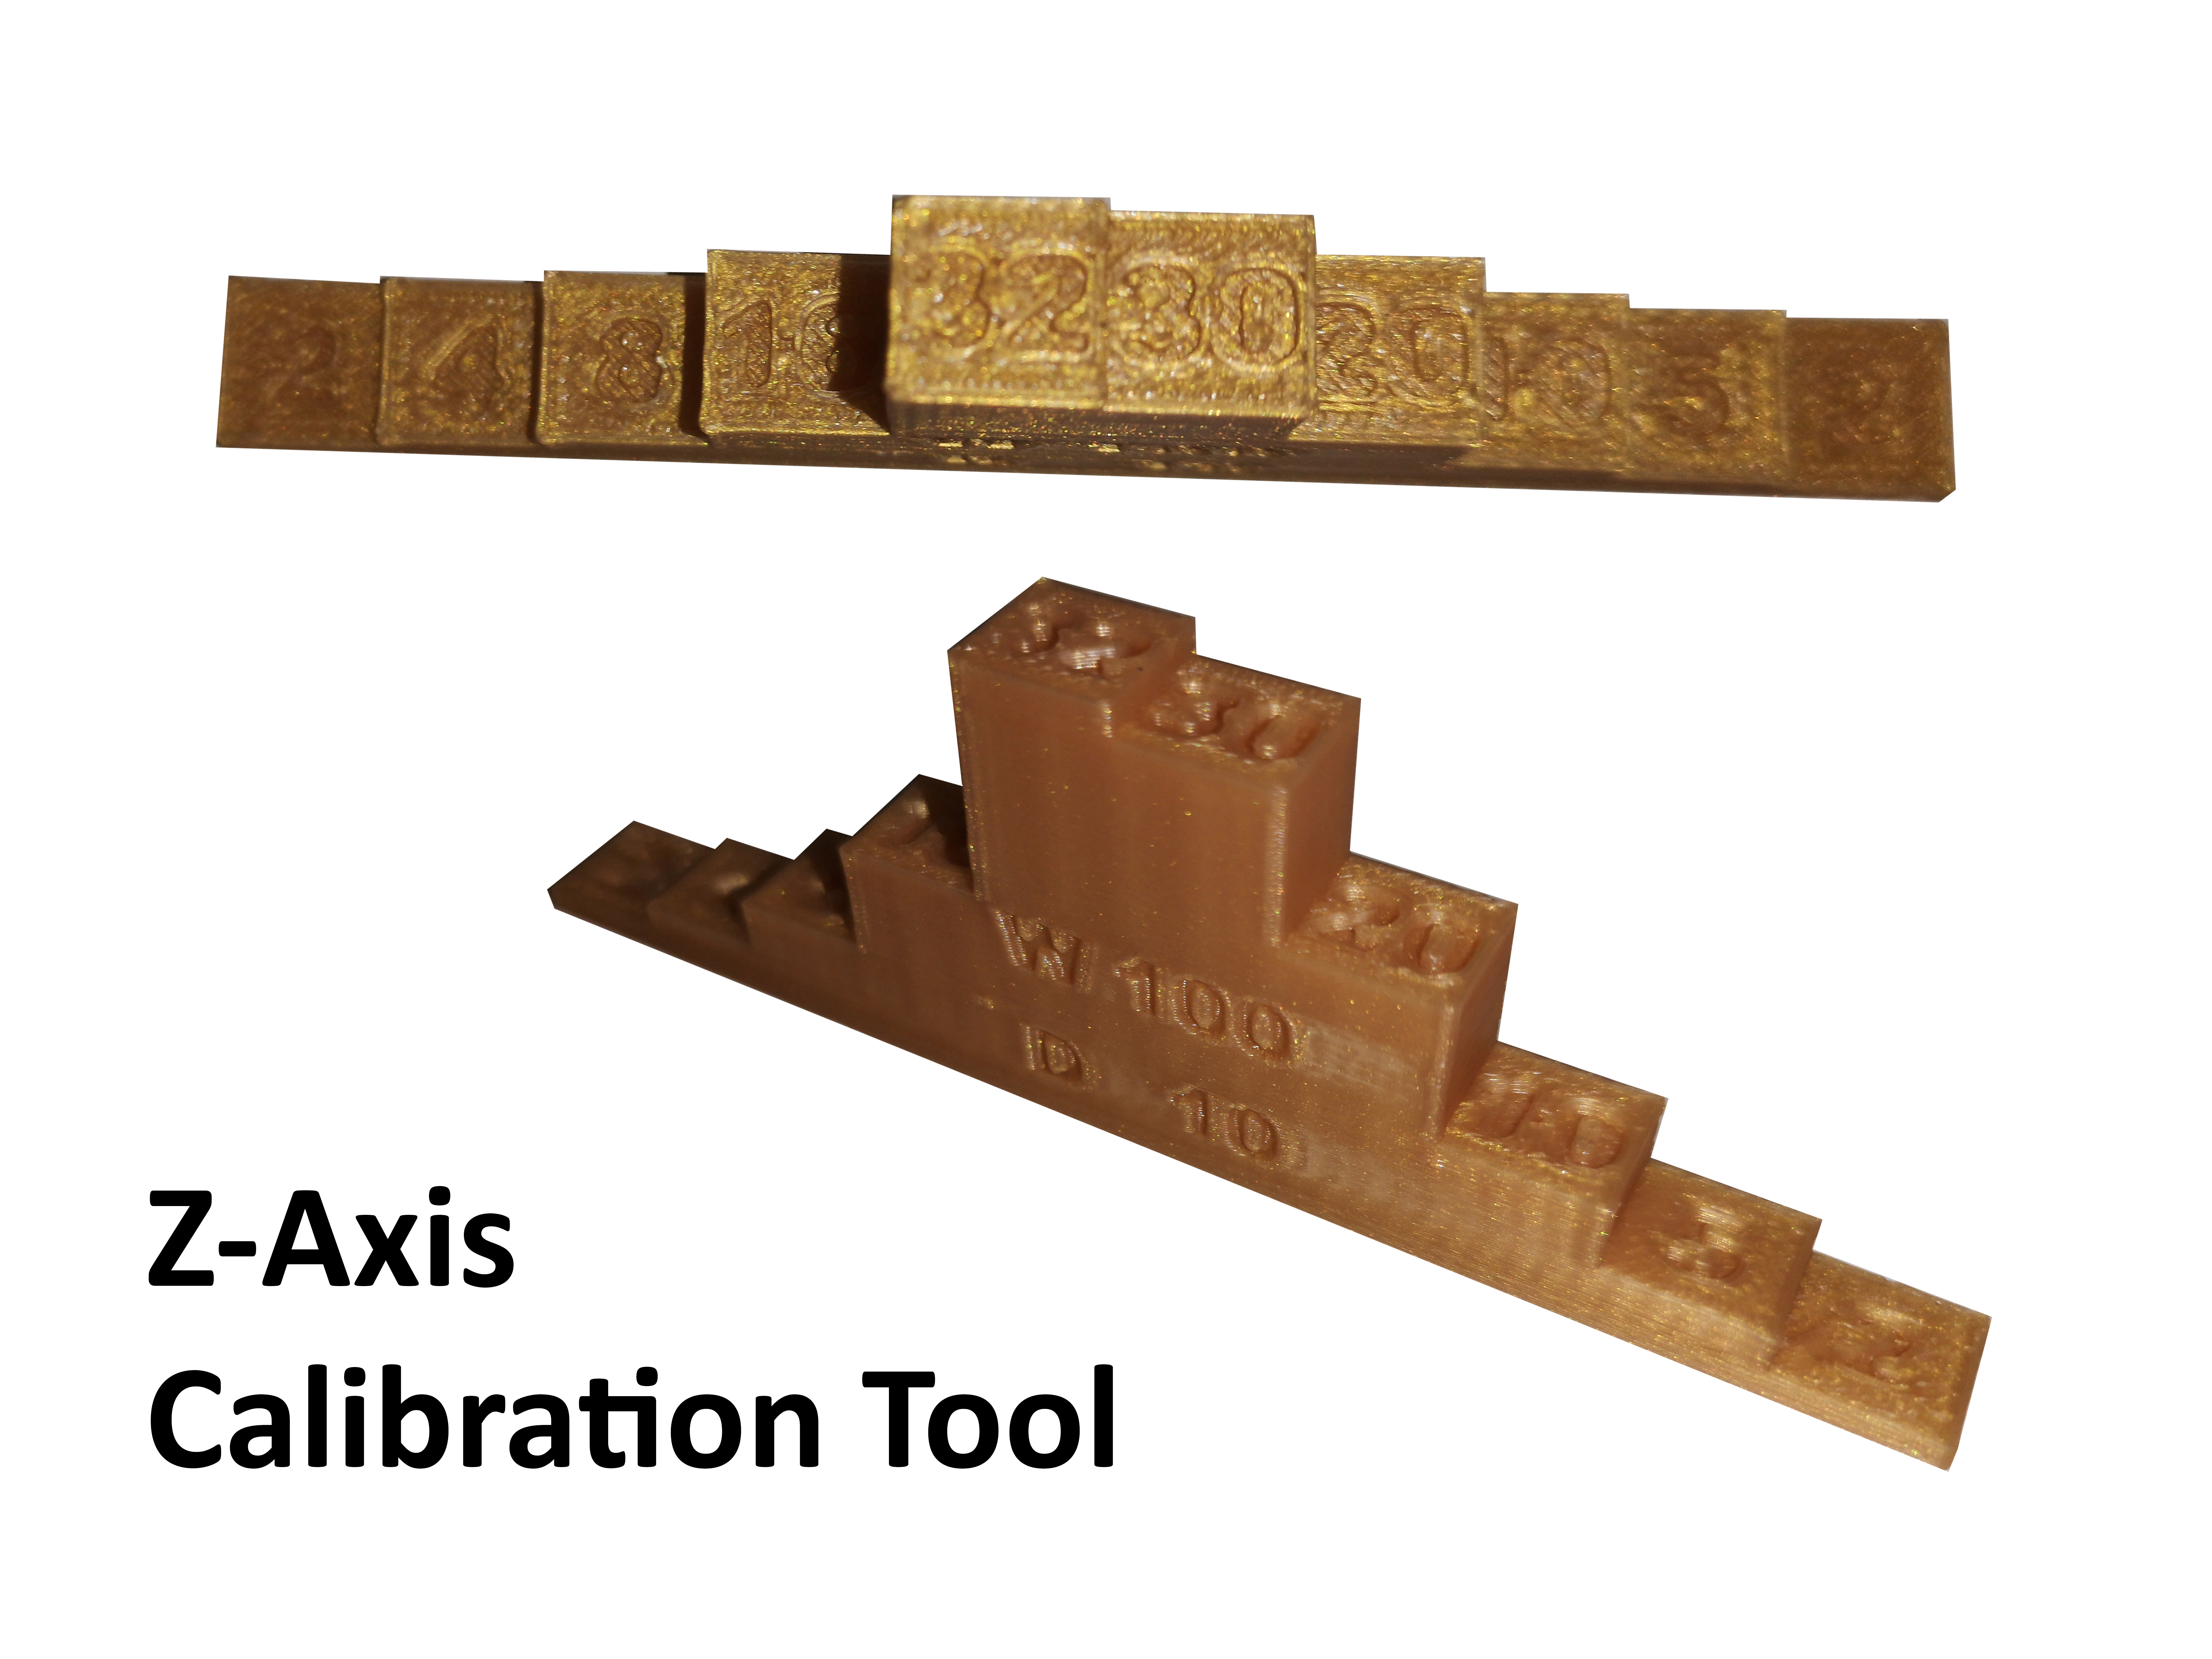 Z-Axis Calibration Tool